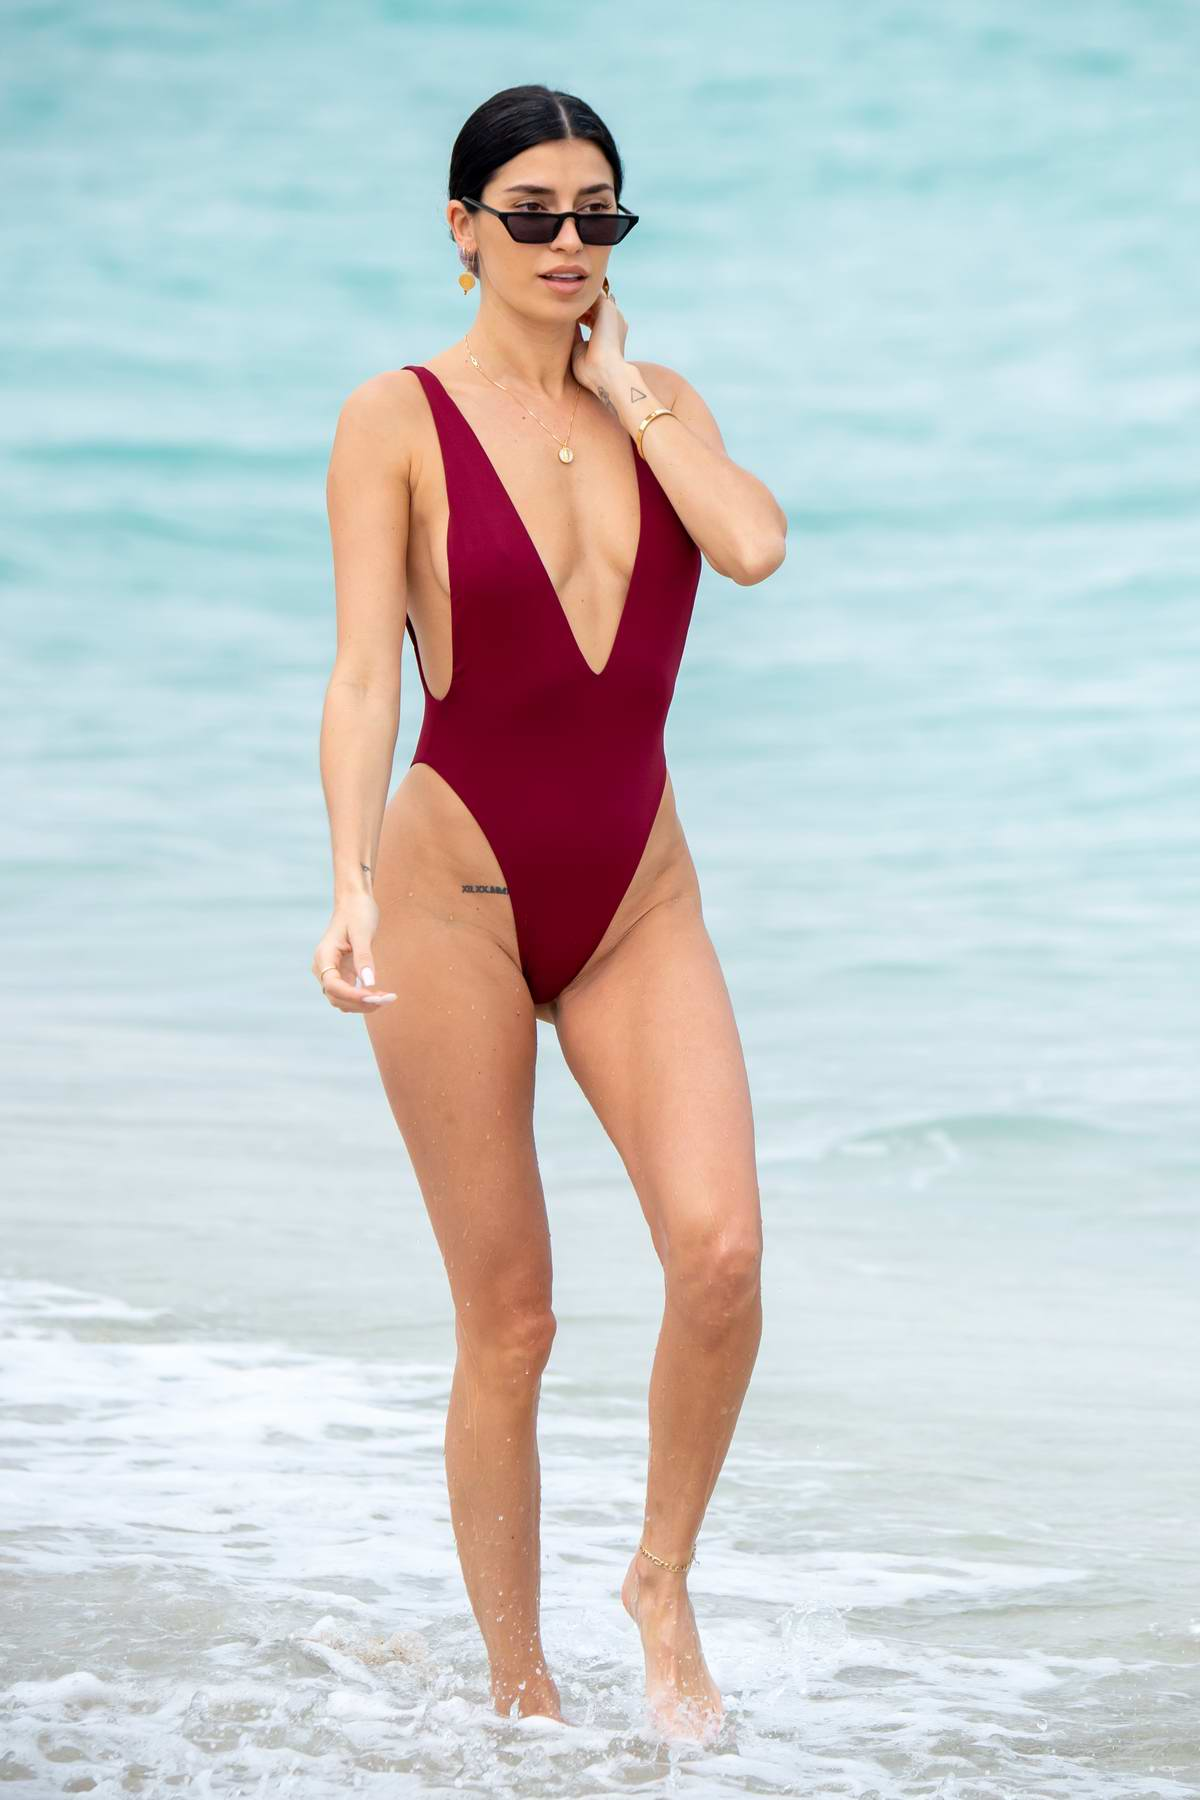 Nicole Williams looks amazing in a maroon swimsuit ahead of her Ocean Drive Magazine cover party in Miami, Florida